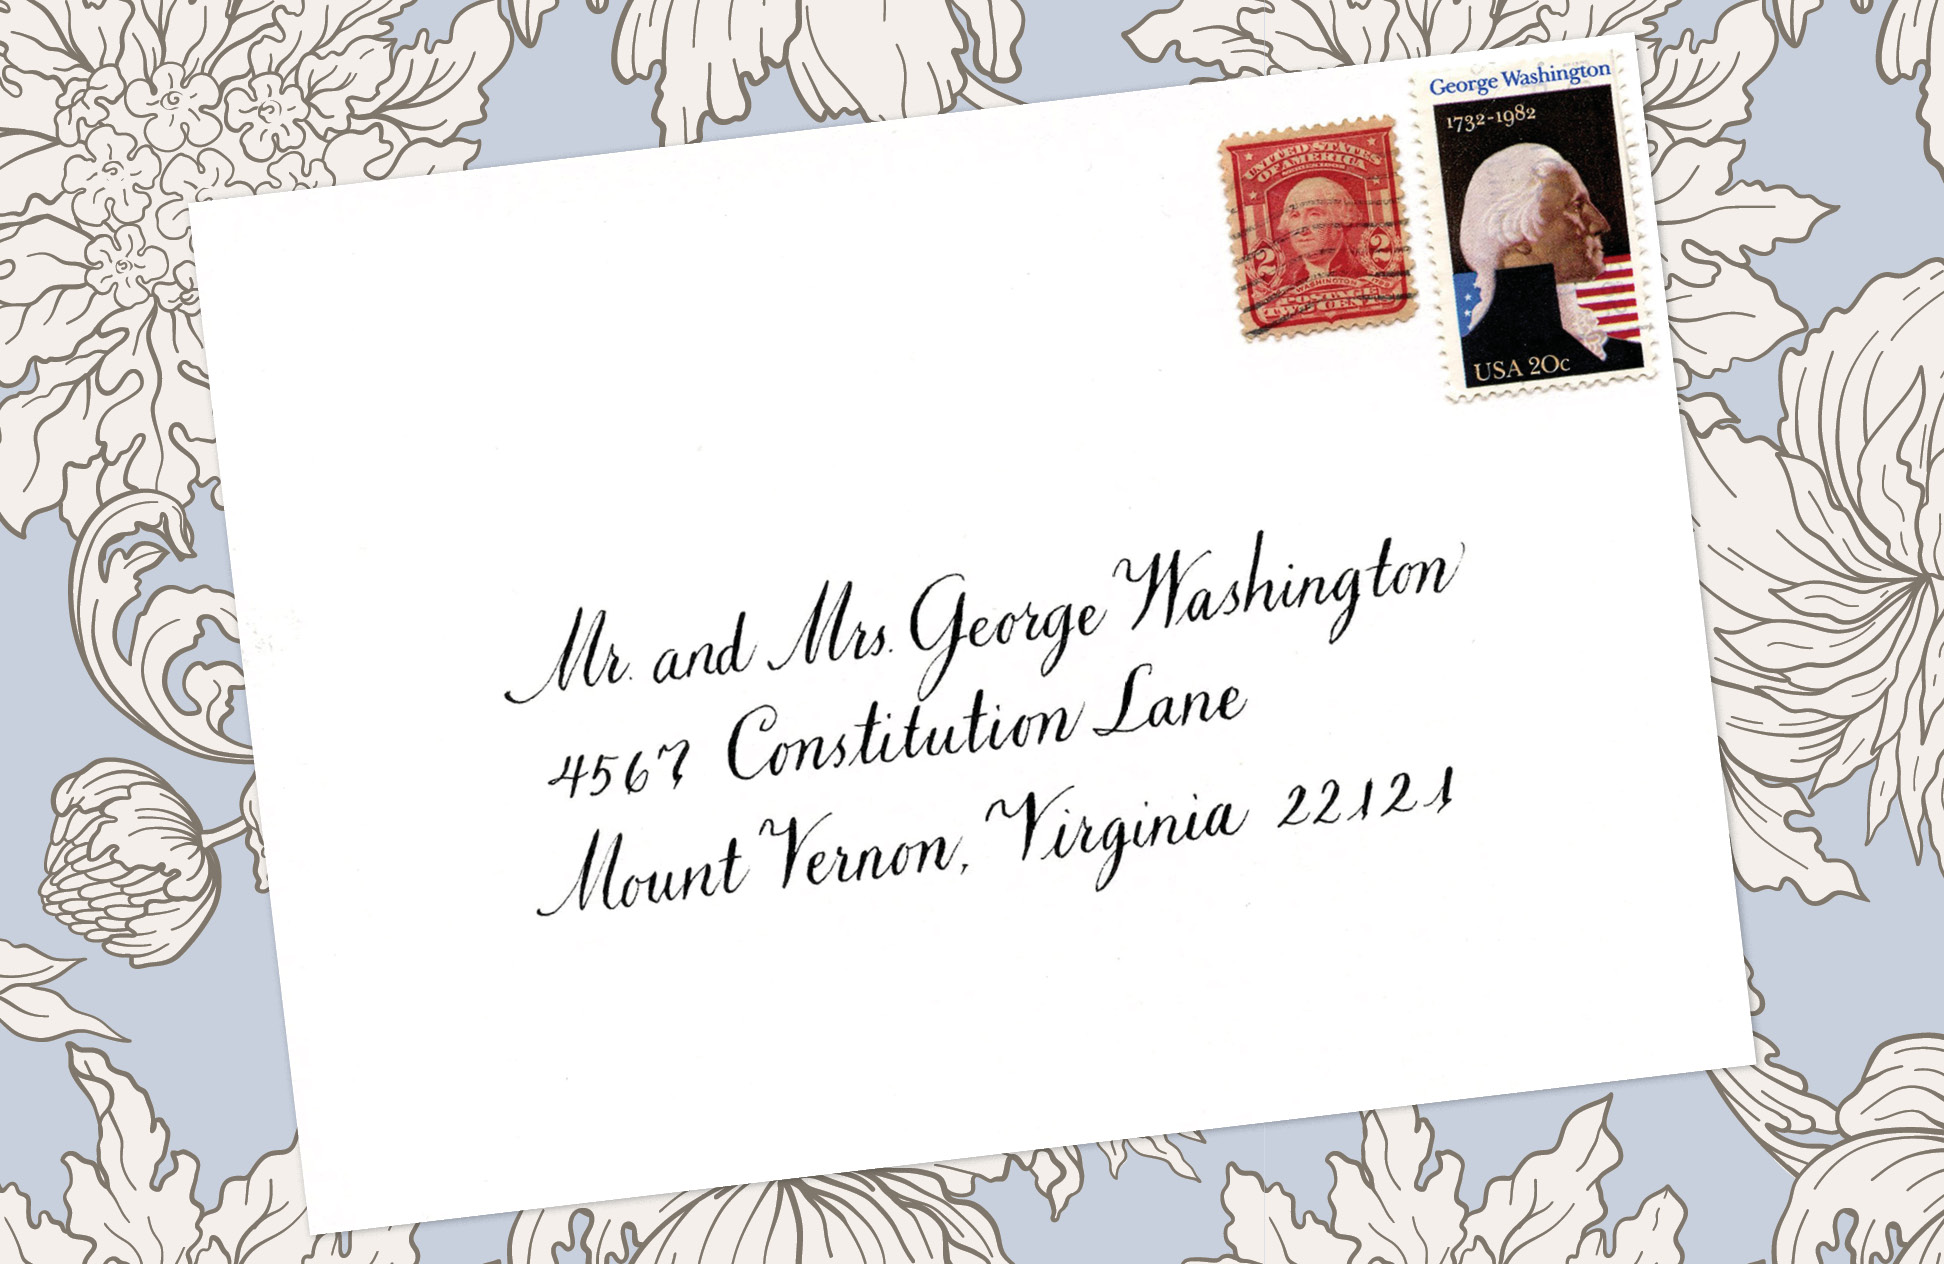 2. Style: Mr. and Mrs. George Washington (Venetian)